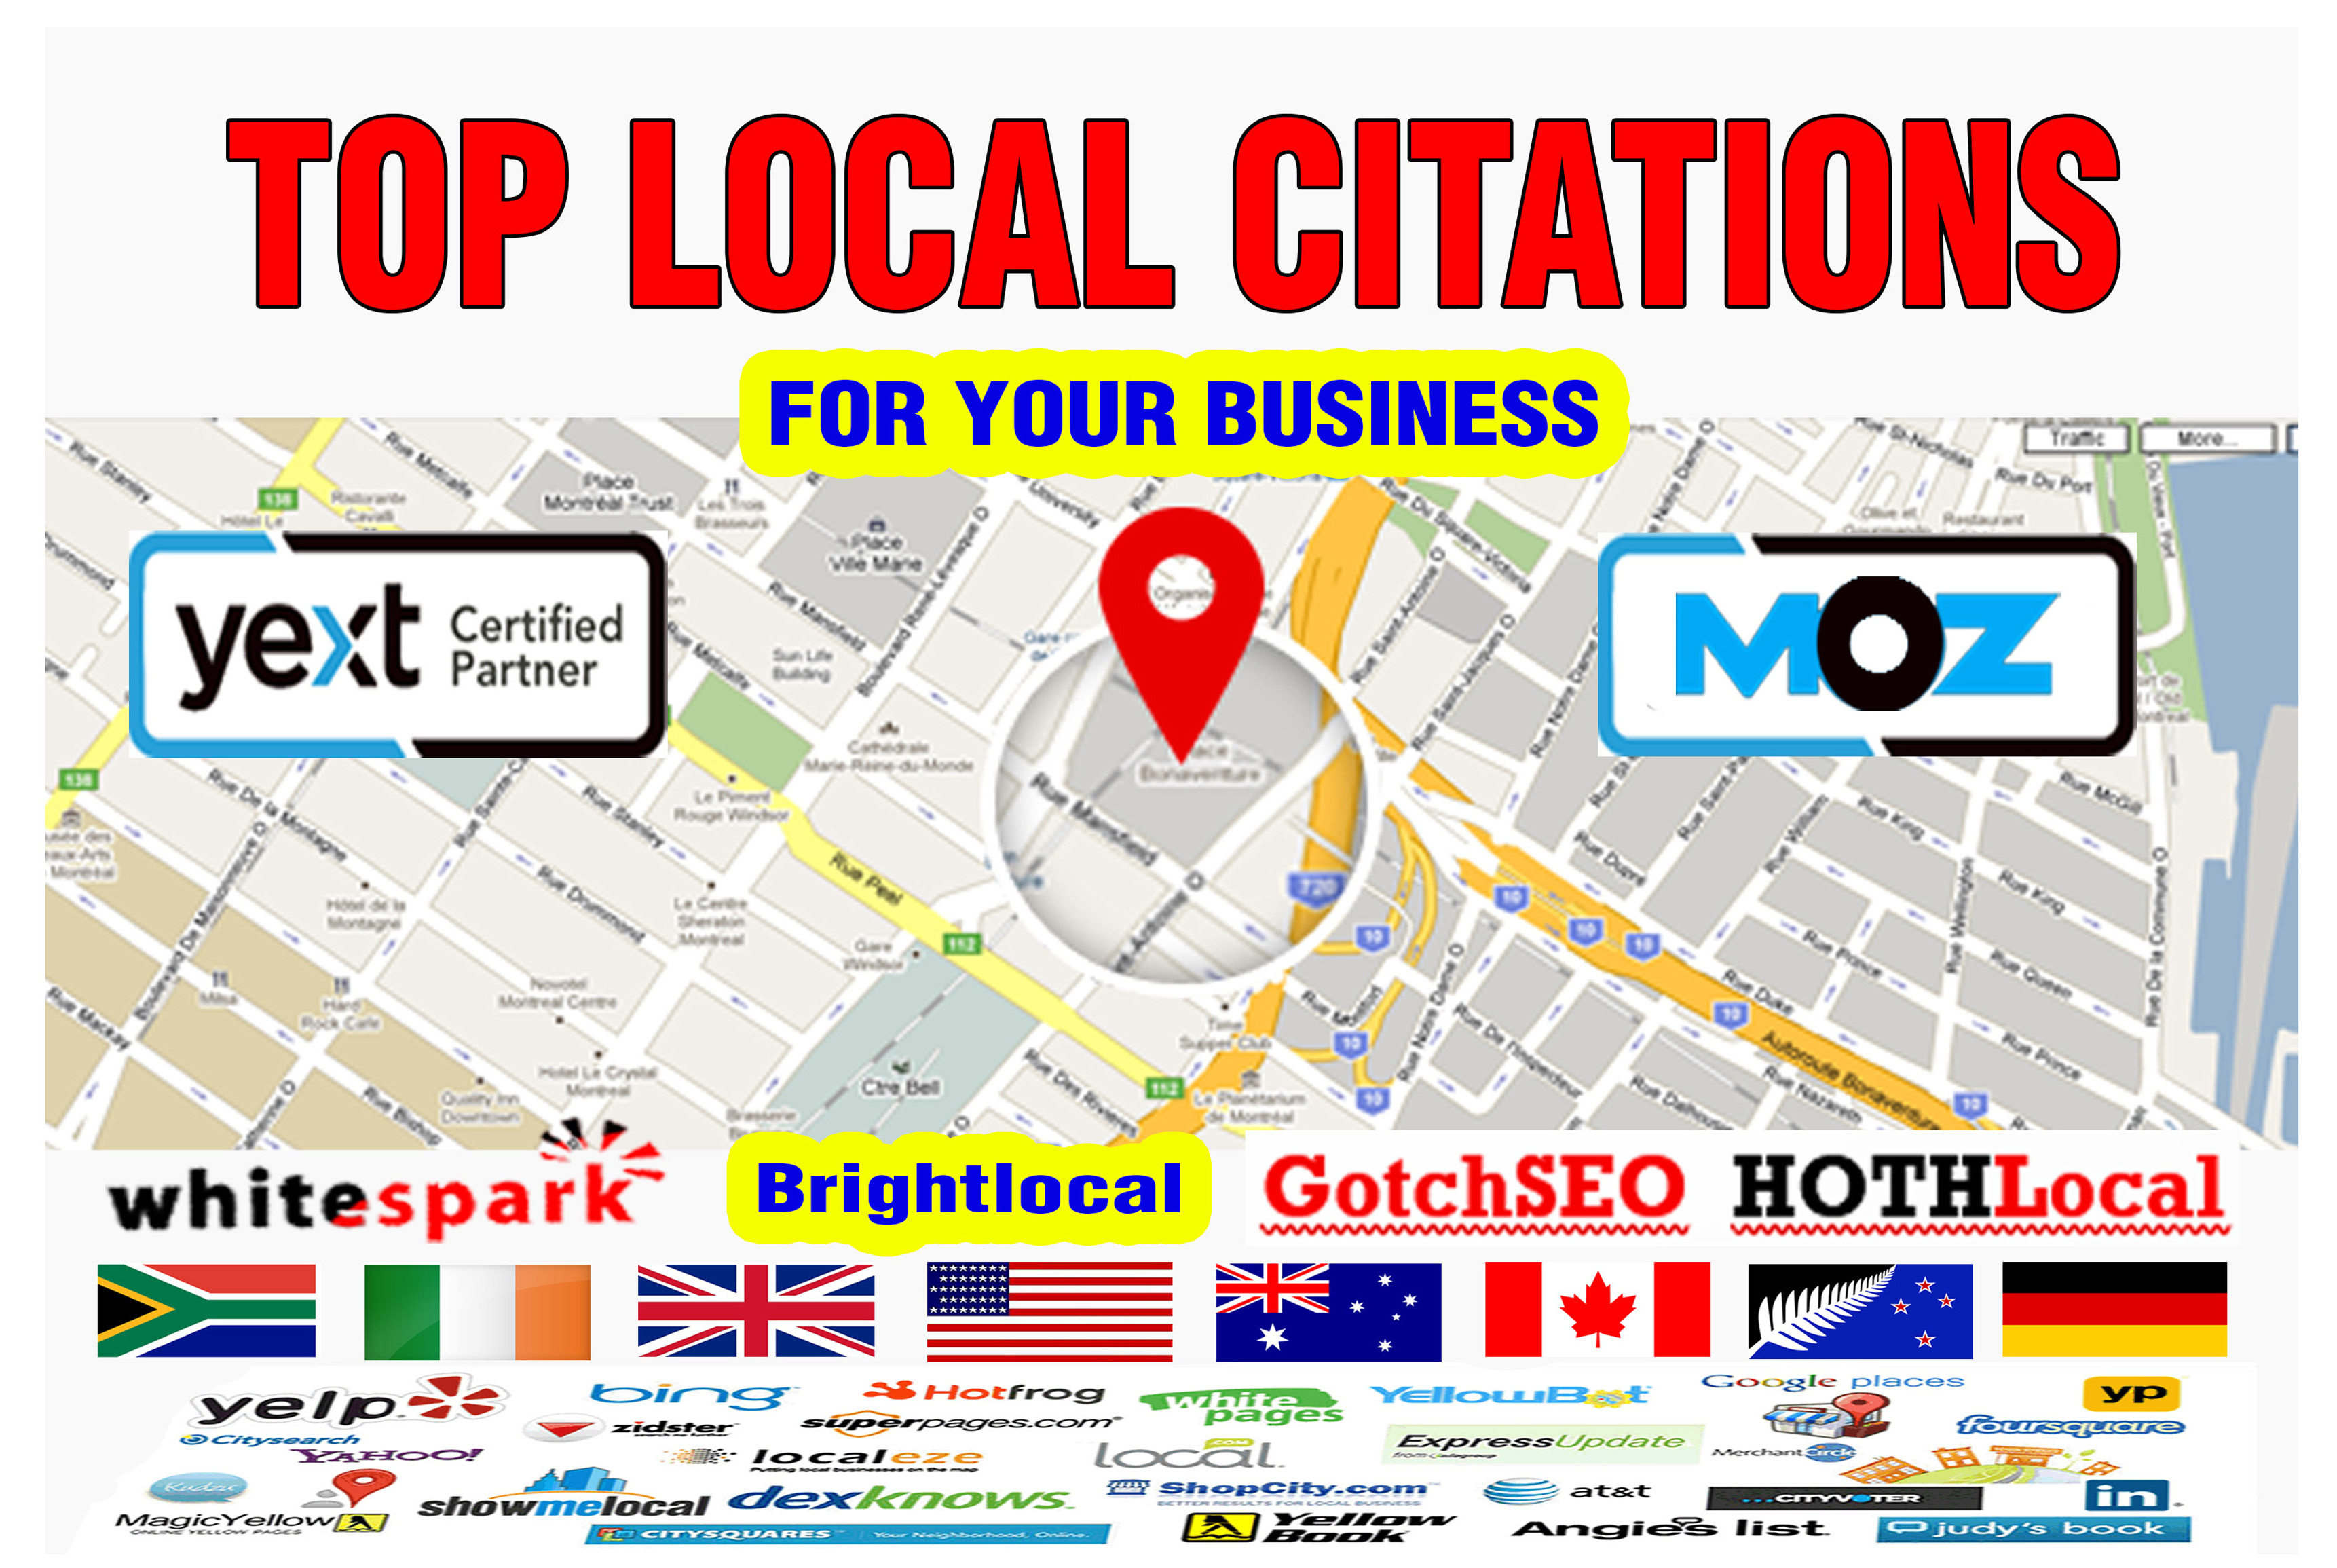 I will do top local citation from yext, moz, brightlocal listed